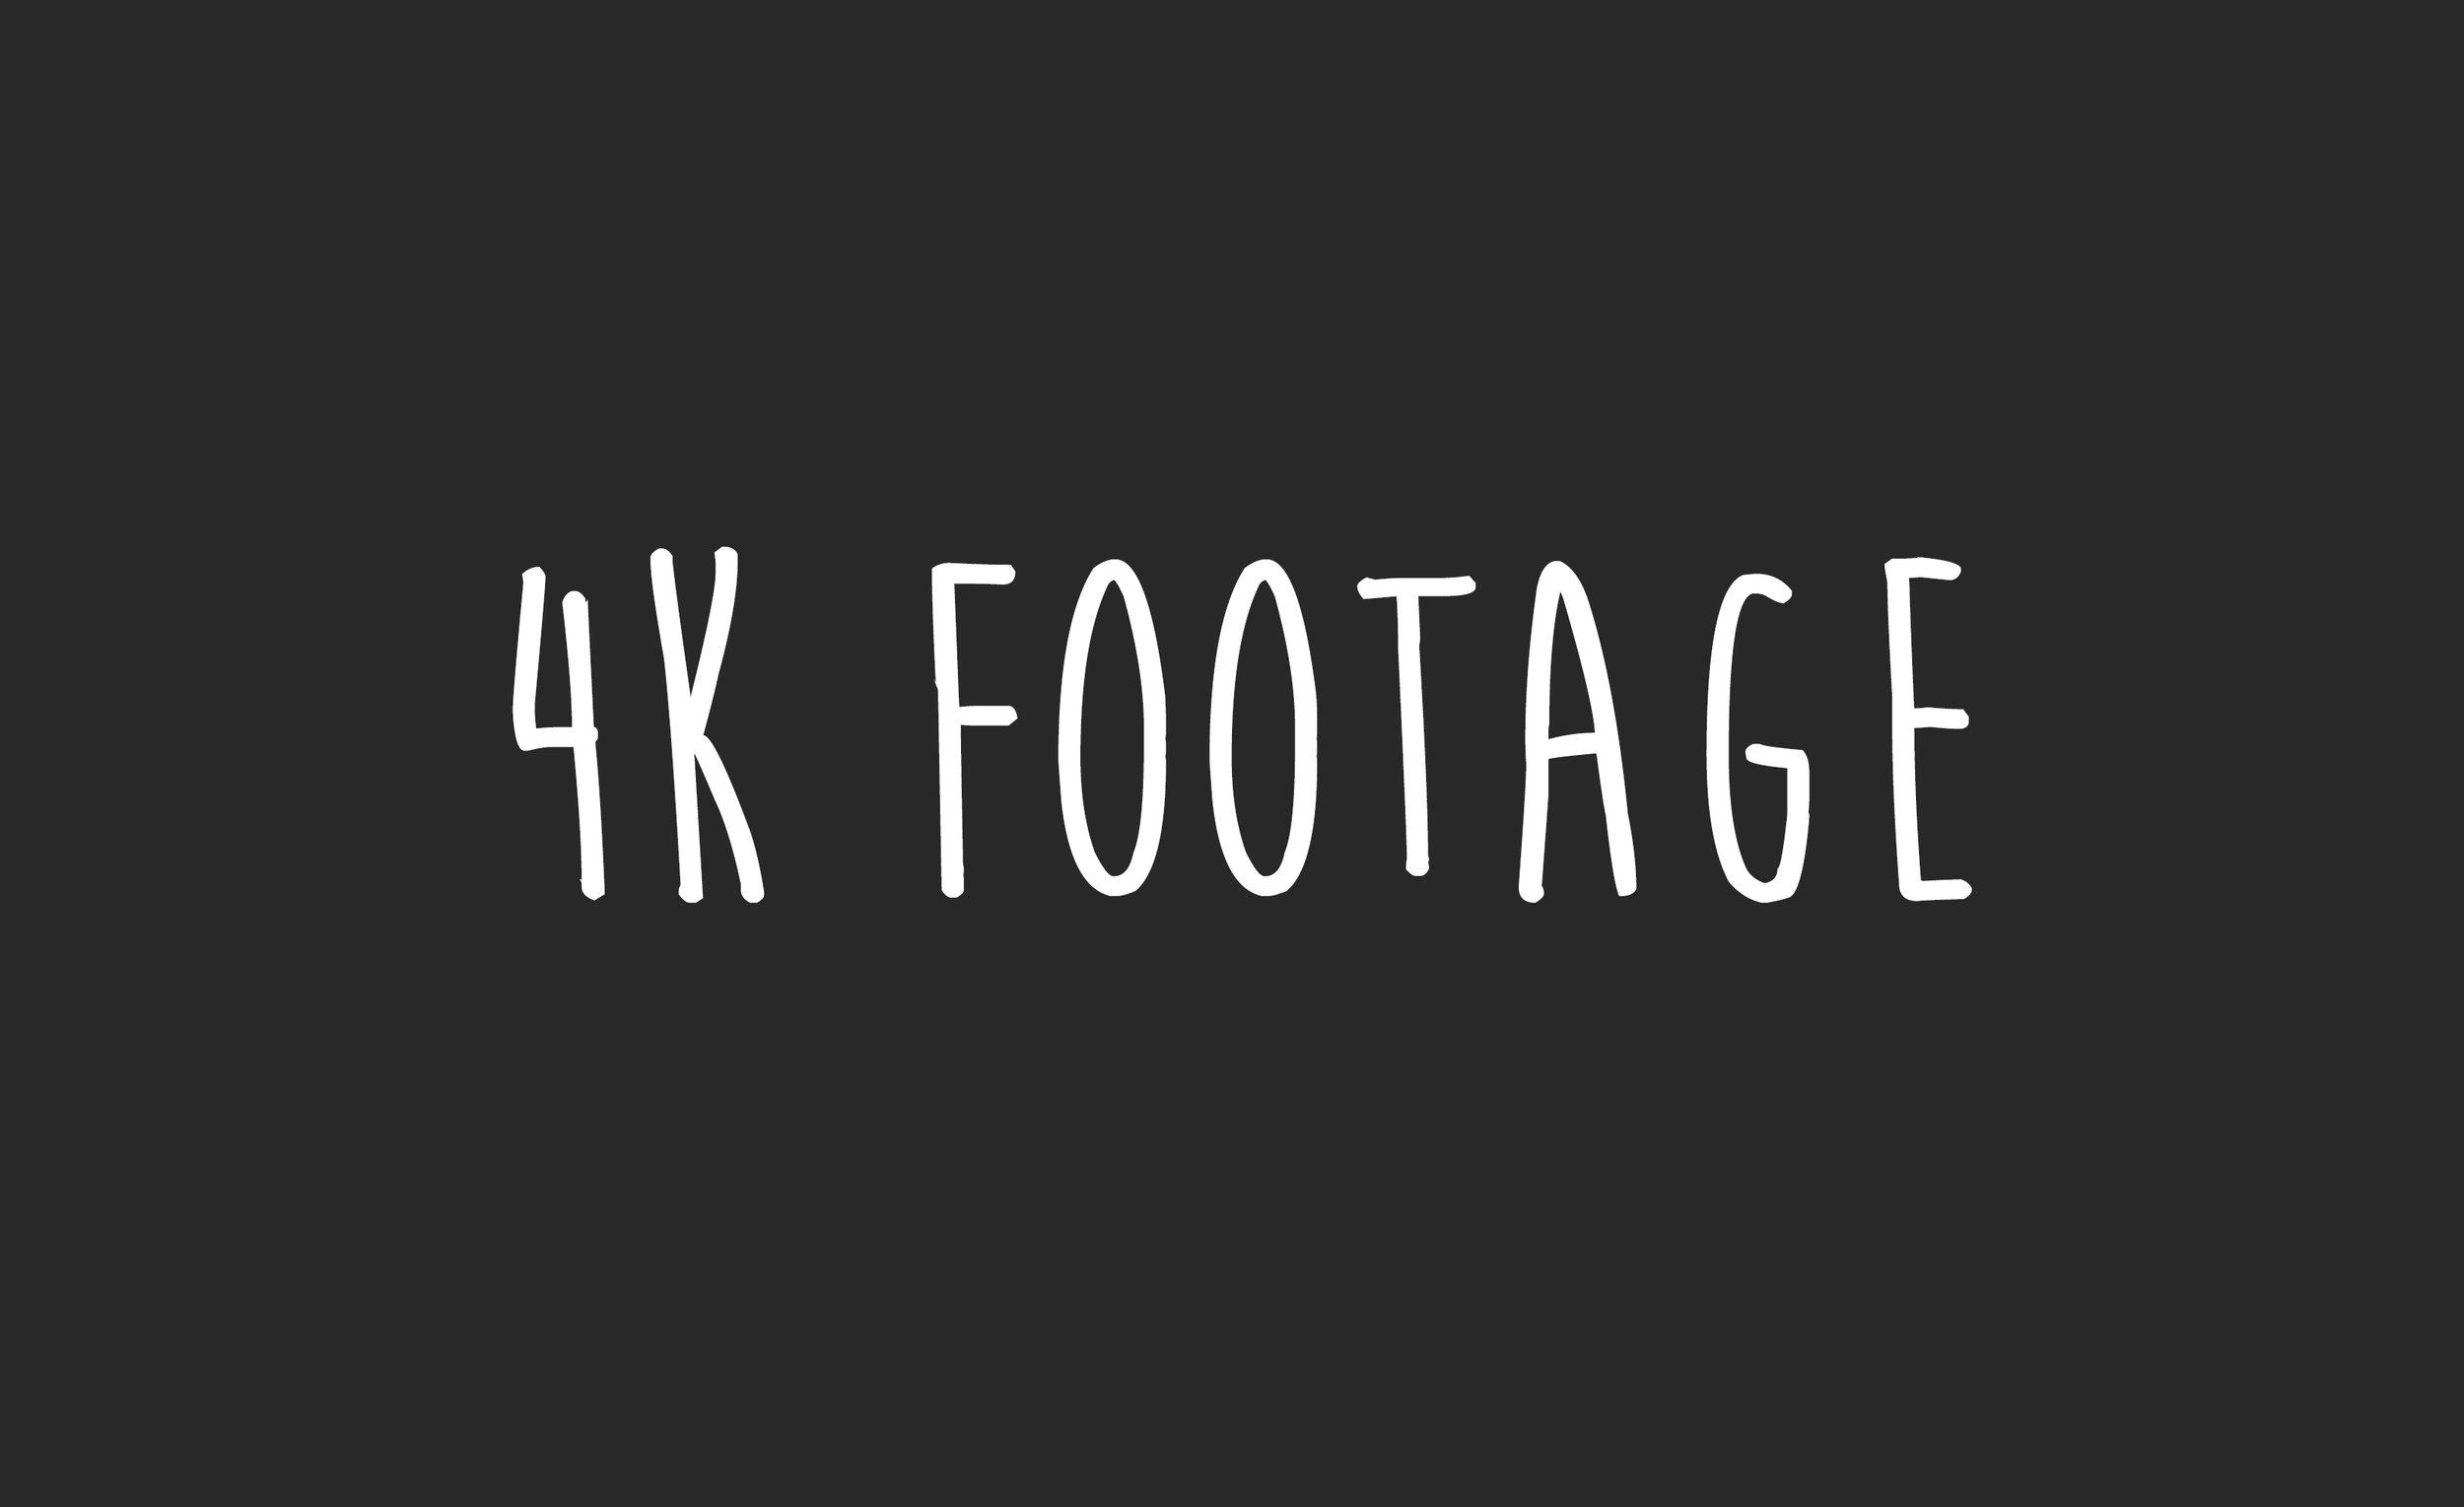 $400 - Every wedding I shoot is filmed in 1080p HD, but for those looking for superior image quality, this is the upgrade for you. 4K is twice as sharp and clear as HD footage and makes every detail of the day sparkle.